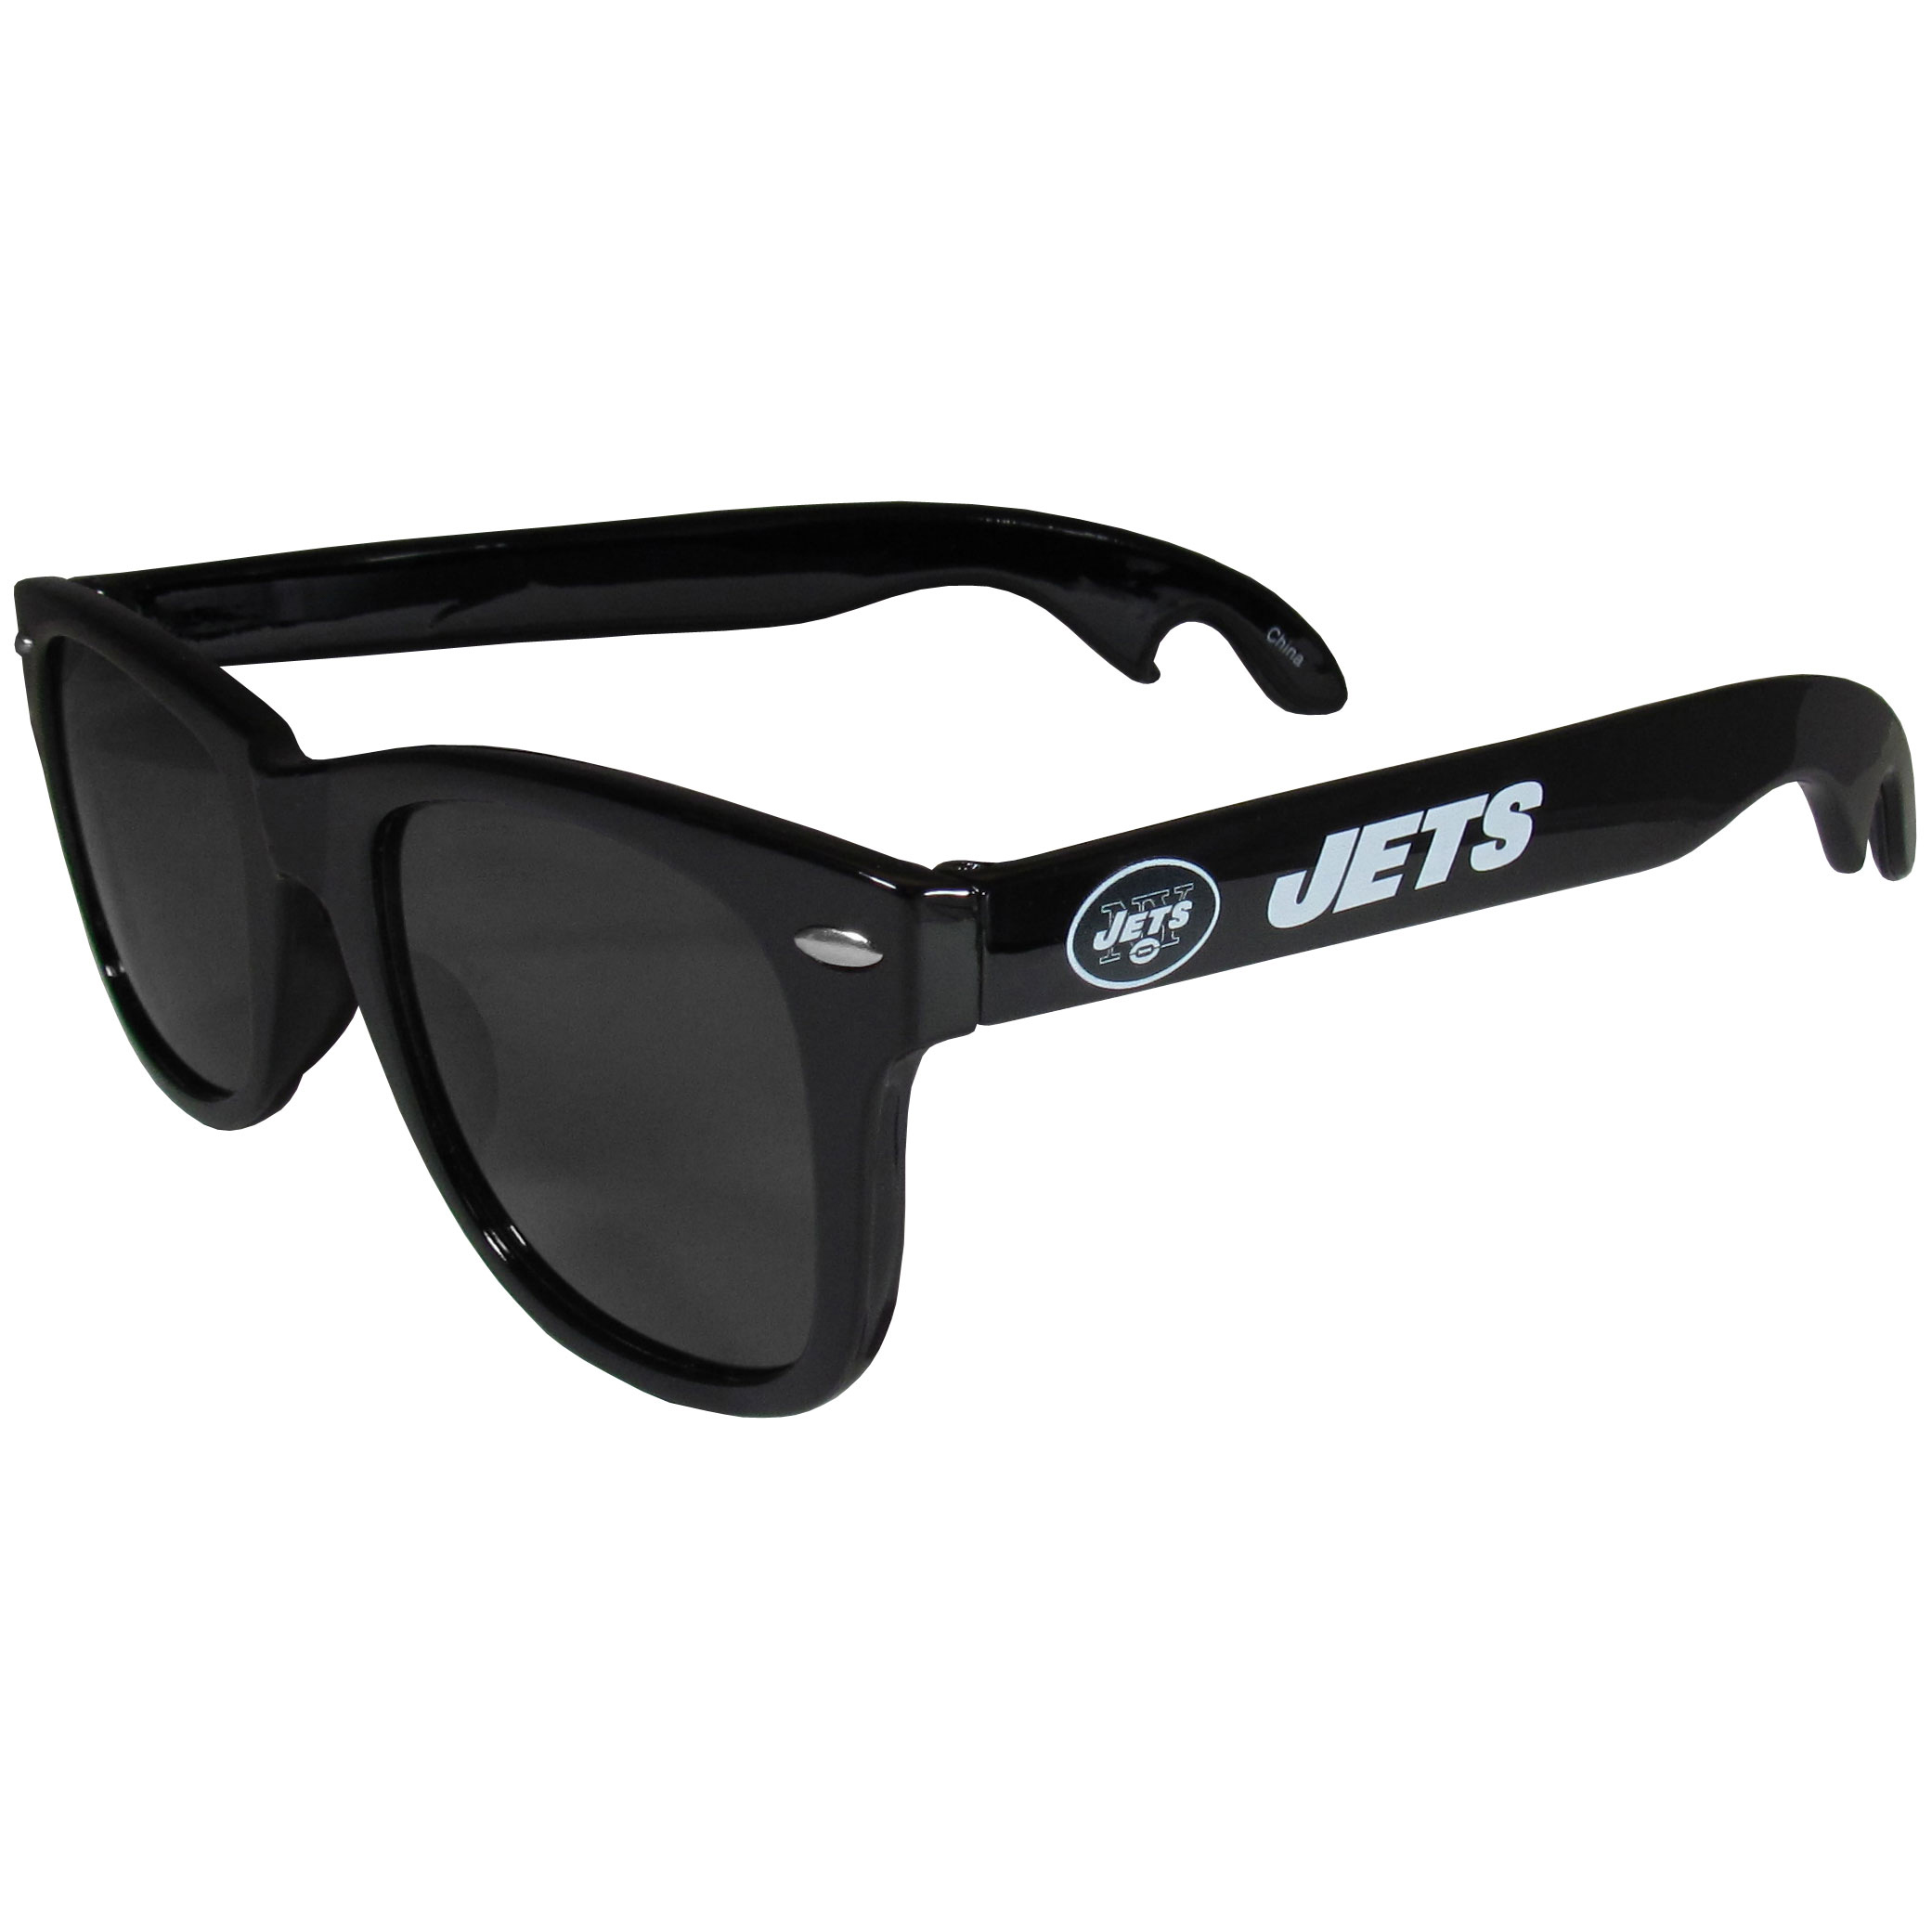 New York Jets Beachfarer Bottle Opener Sunglasses - Seriously, these sunglasses open bottles! Keep the party going with these amazing New York Jets bottle opener sunglasses. The stylish retro frames feature team designs on the arms and functional bottle openers on the end of the arms. Whether you are at the beach or having a backyard BBQ on game day, these shades will keep your eyes protected with 100% UVA/UVB protection and keep you hydrated with the handy bottle opener arms.